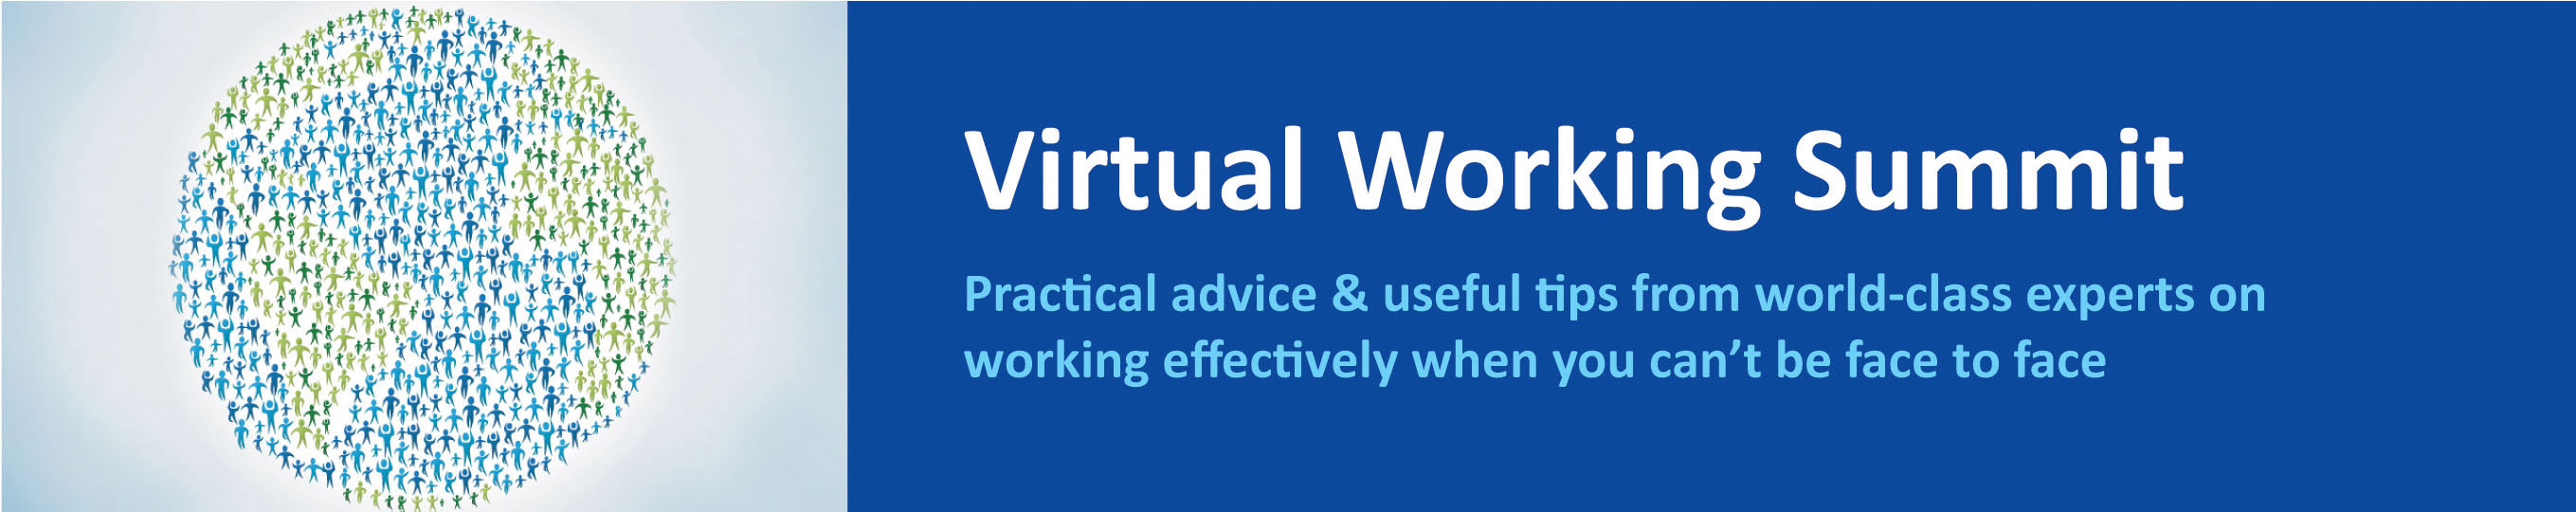 Virtual Working Summit